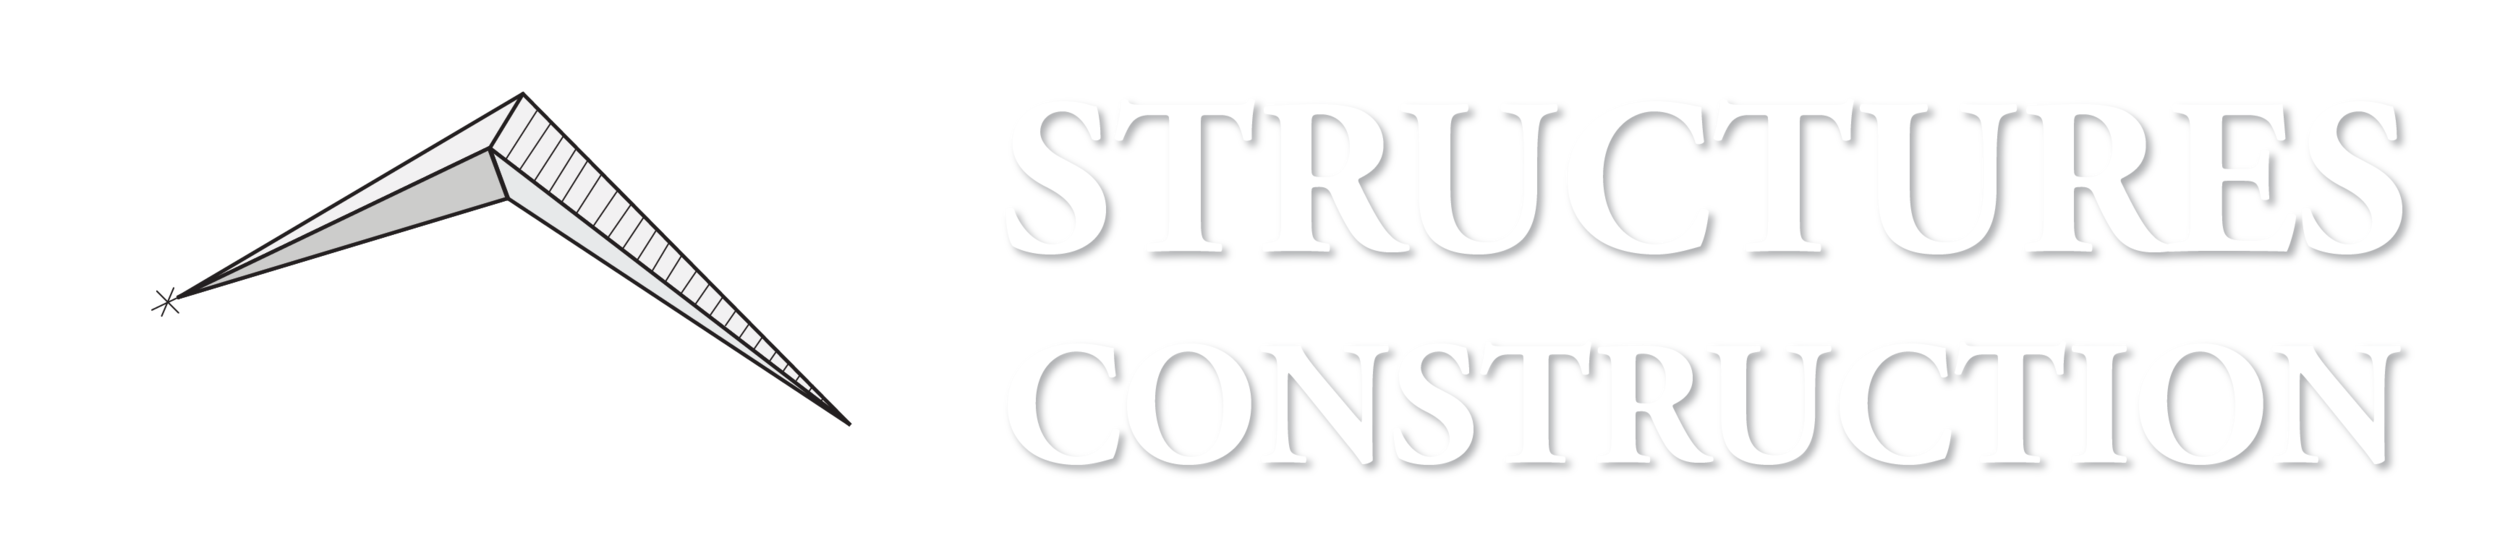 Structures Logo with Name white.png